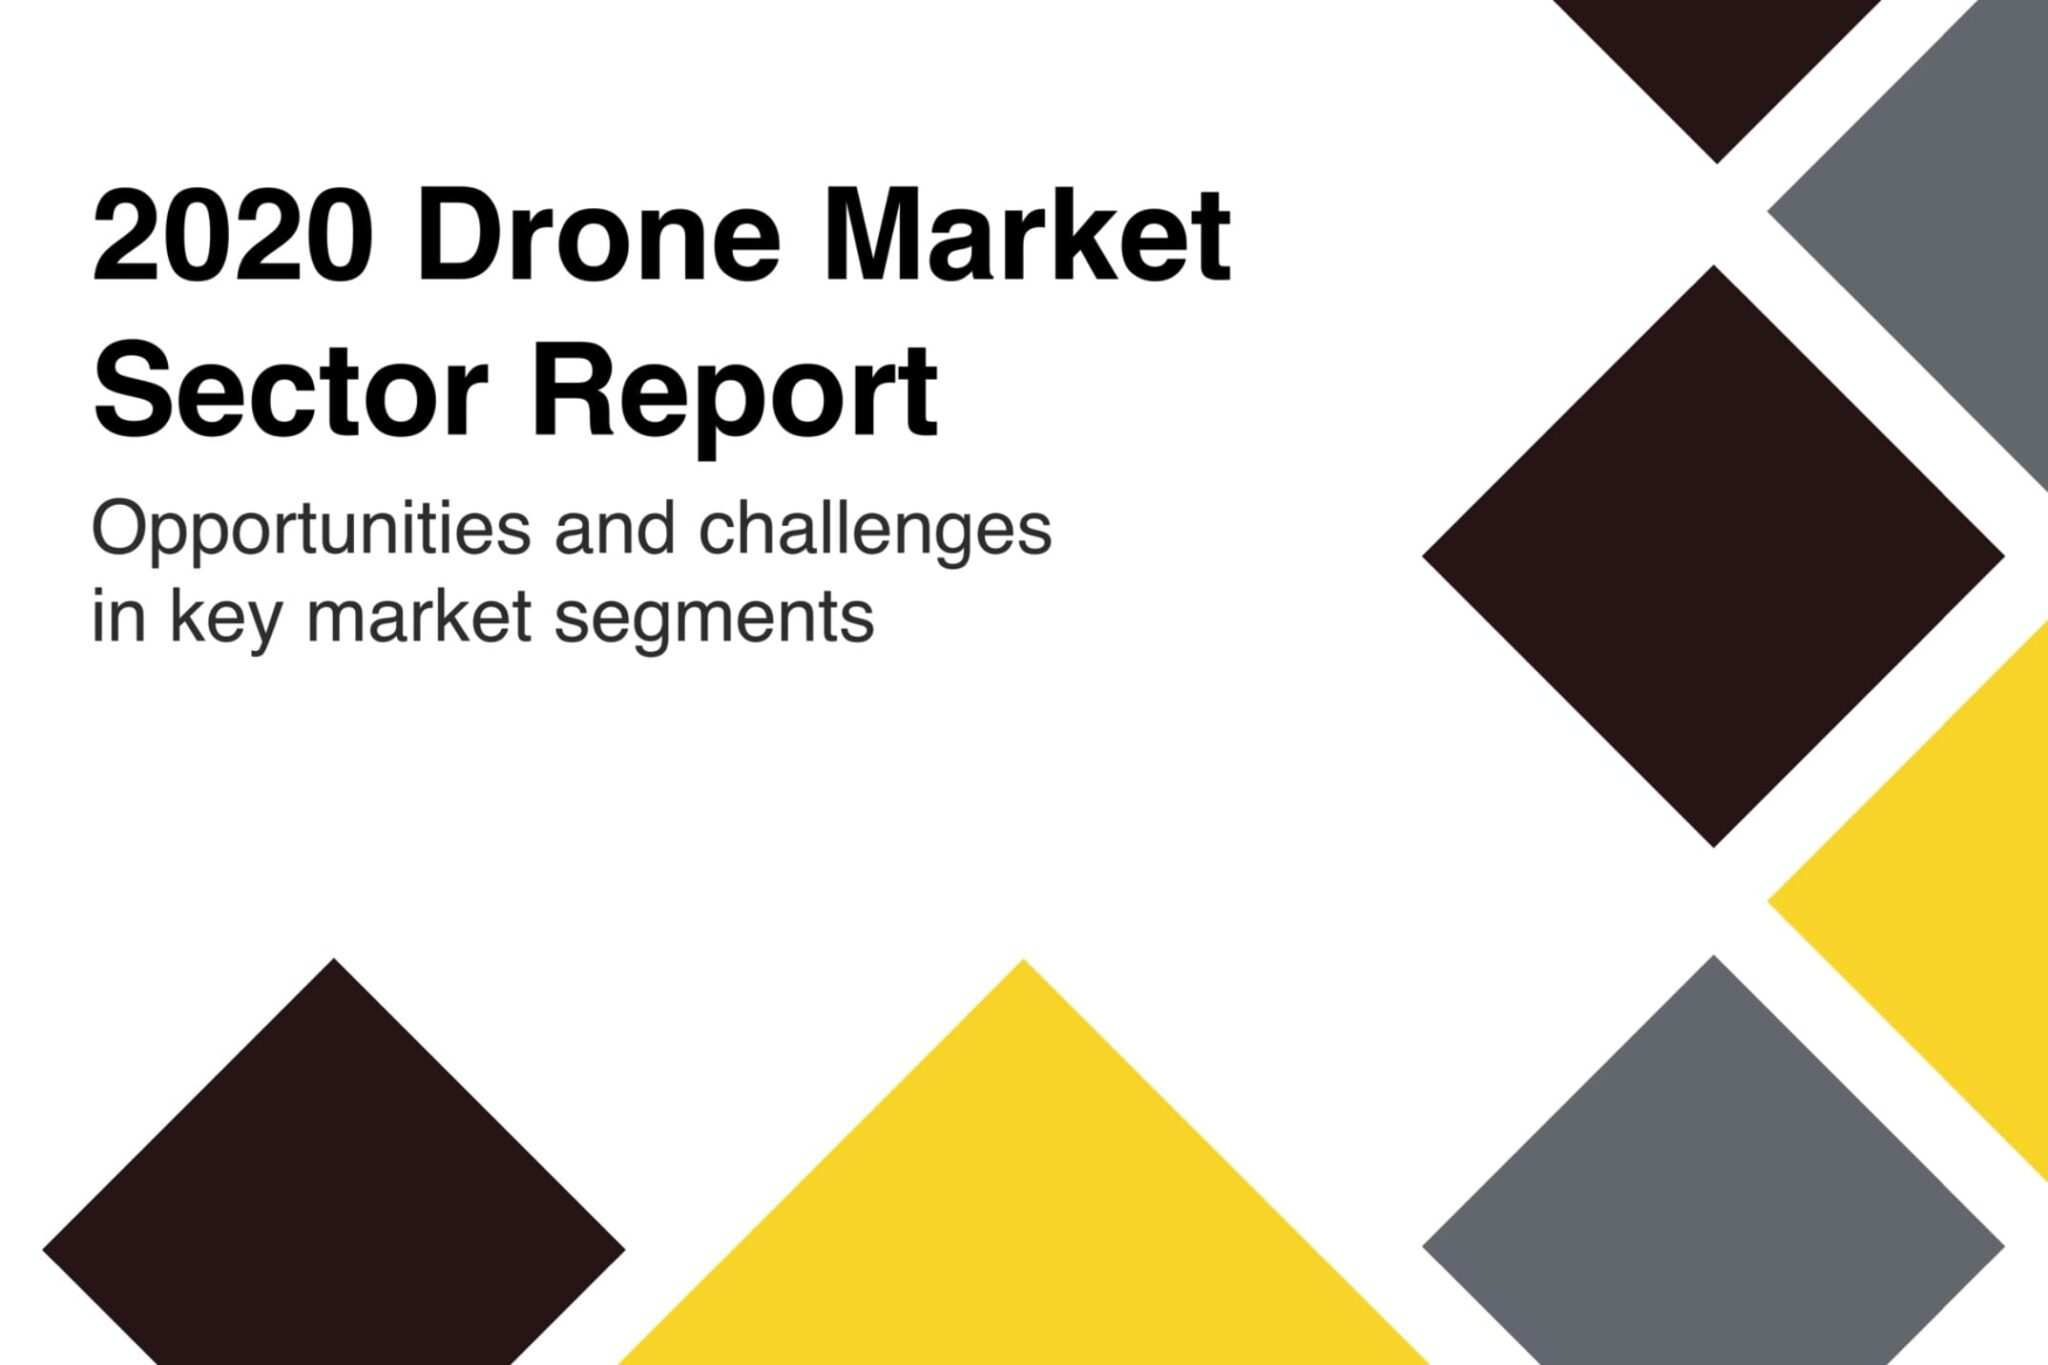 2020 drone industry trends outlined in new DroneAnalyst Report